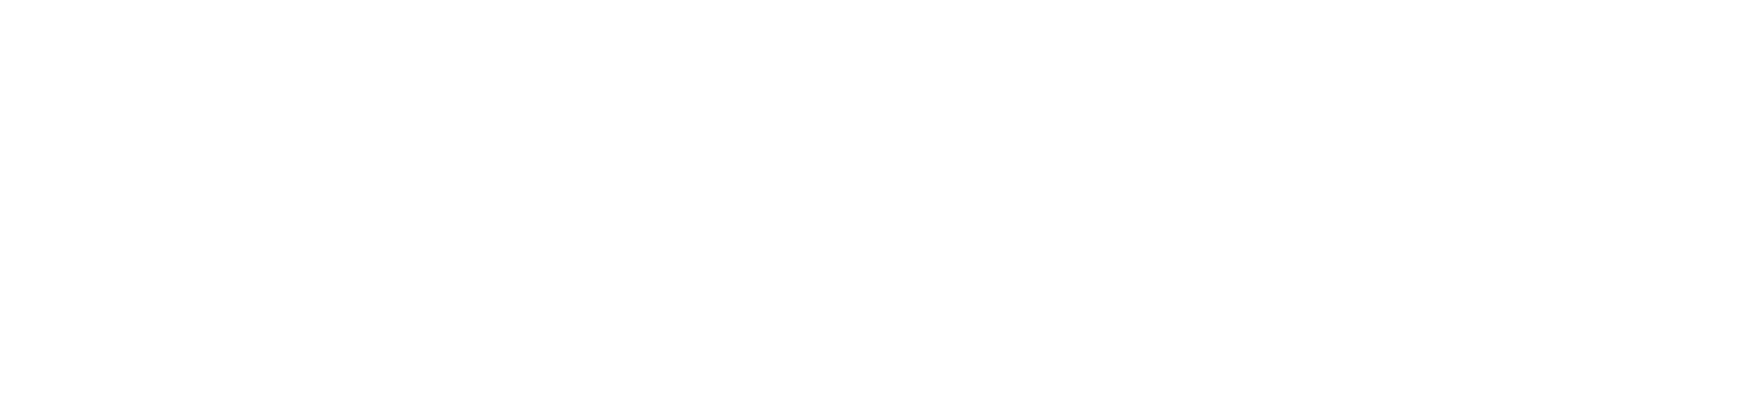 TheVillageResidences_logo-white